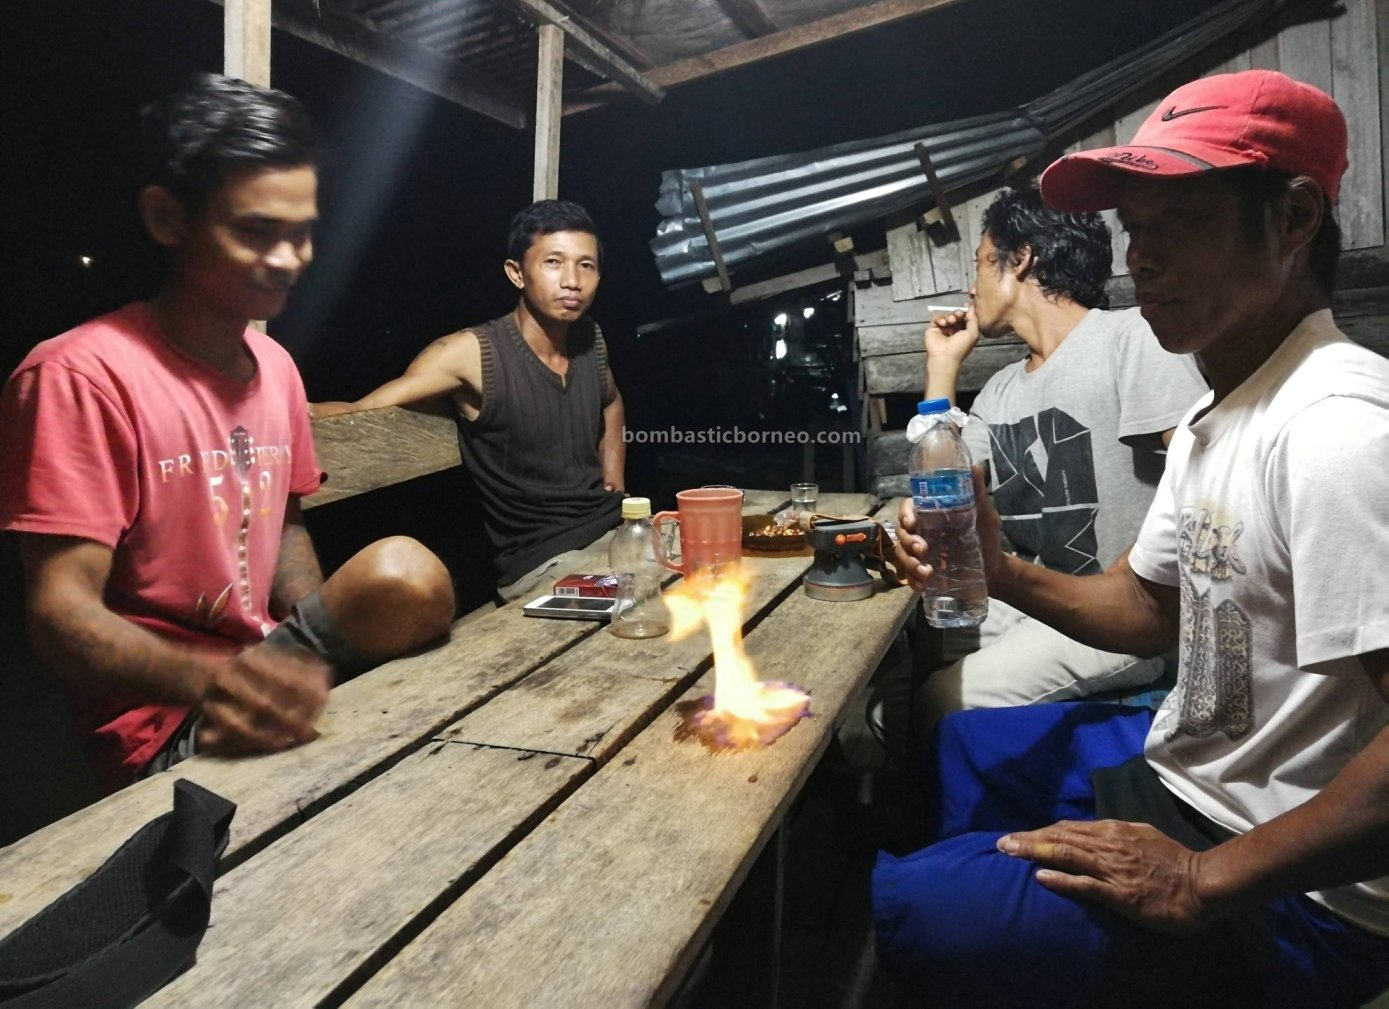 backpackers, rumah terapung, authentic, traditional, Borneo, Sungai Melawi, Pinoh river, Tourism, tourist attraction, travel guide, Trans Border, 跨境婆罗洲, 西加里曼丹水上之家, 彬路默拉维河